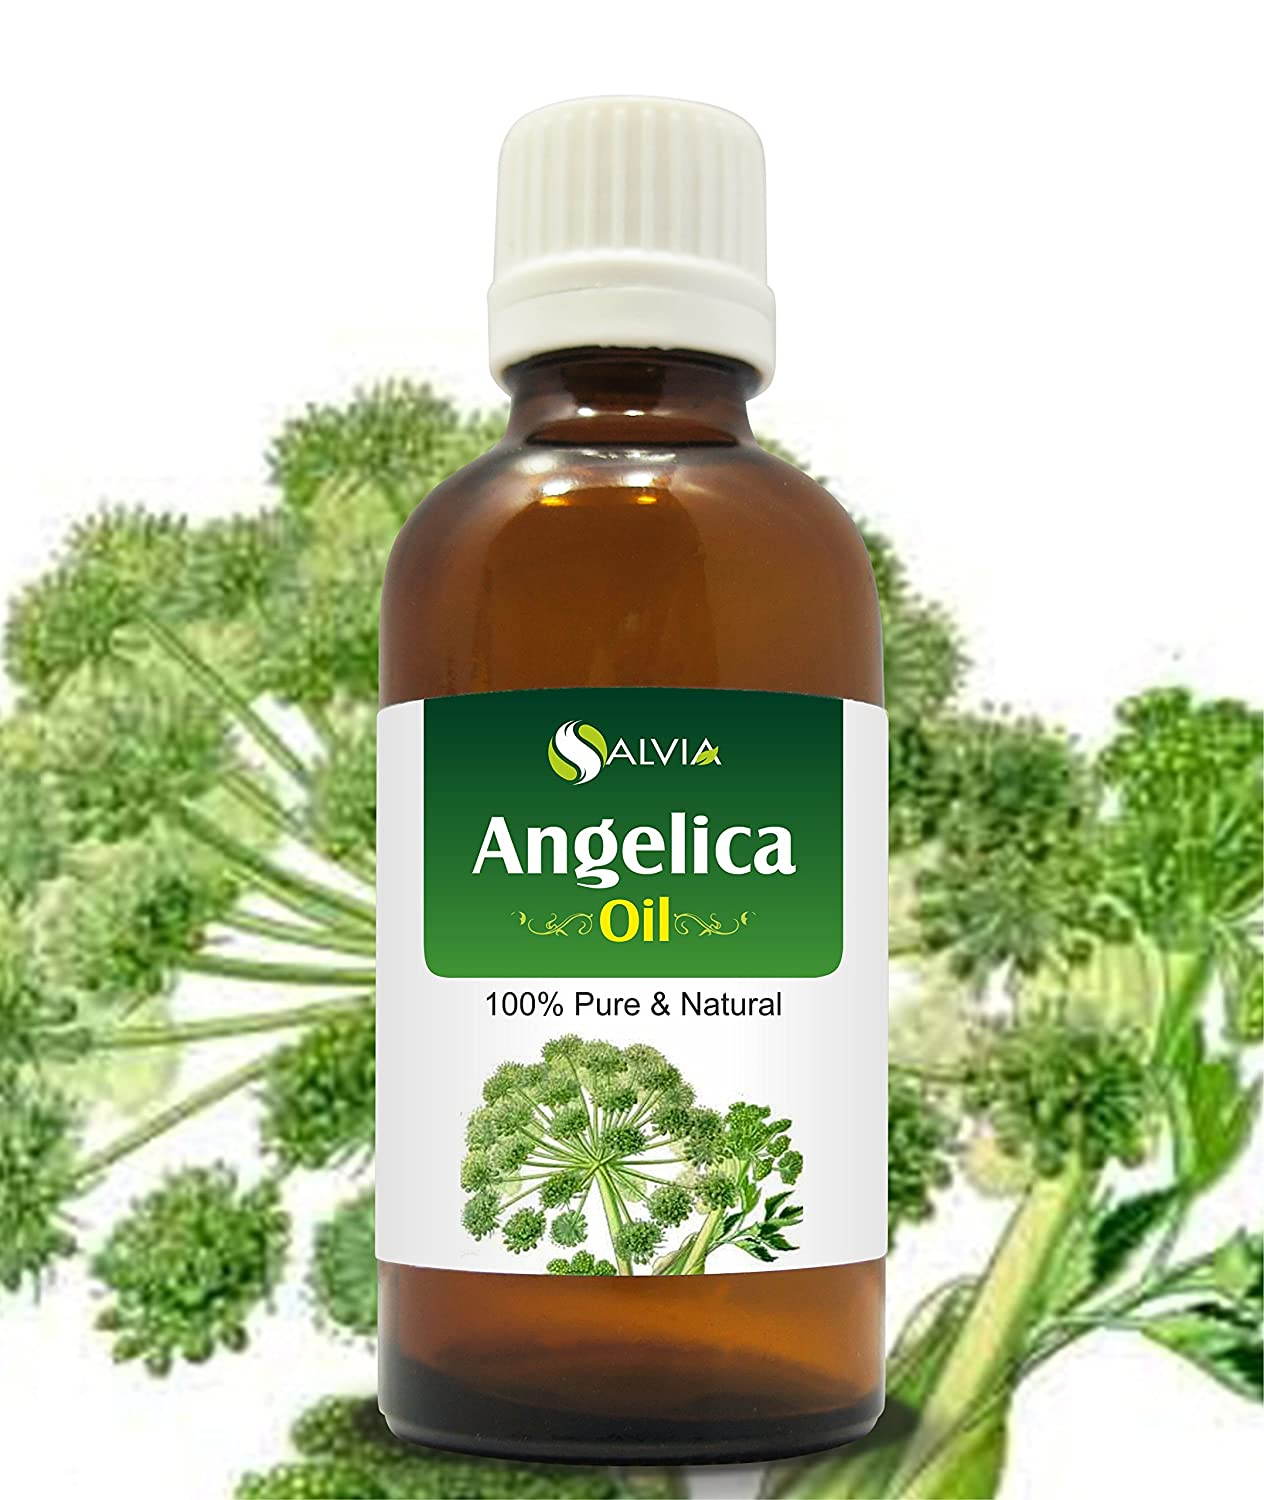 【誠実】 ANGELICA 100ML OIL OIL 100% NATURAL PURE UNDILUTED B017O29PNE UNCUT ESSENTIAL OIL 100ML B017O29PNE, 家具インテリア大川家具通販:ad6dfbc6 --- arianechie.dominiotemporario.com